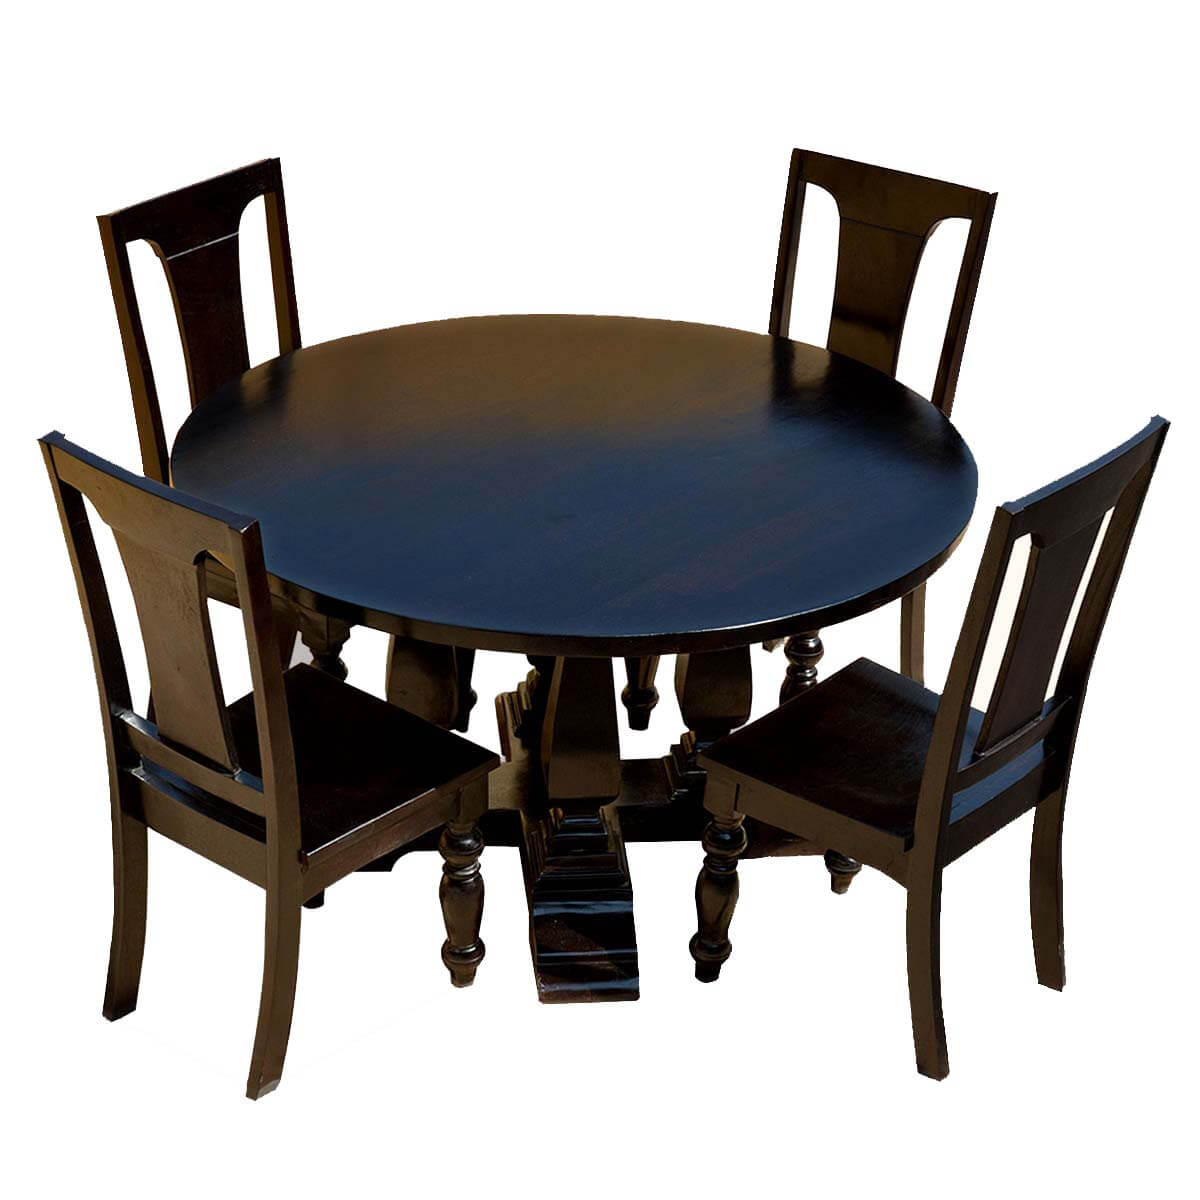 Mango Wood Lincoln Study Black Round Dining Table & Chair Set